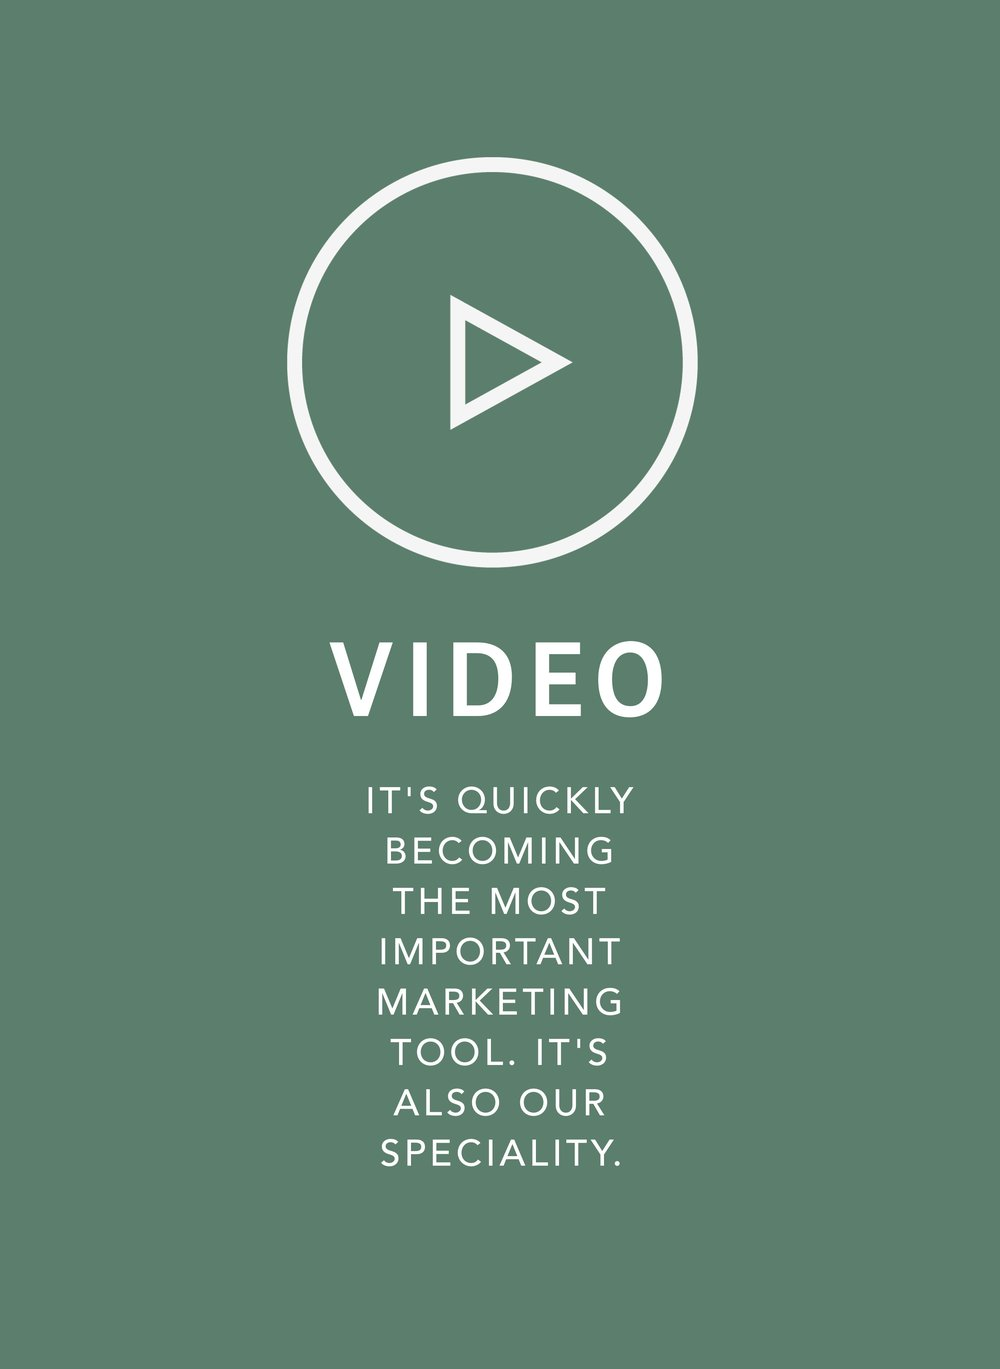 amplify creative services - video.jpg